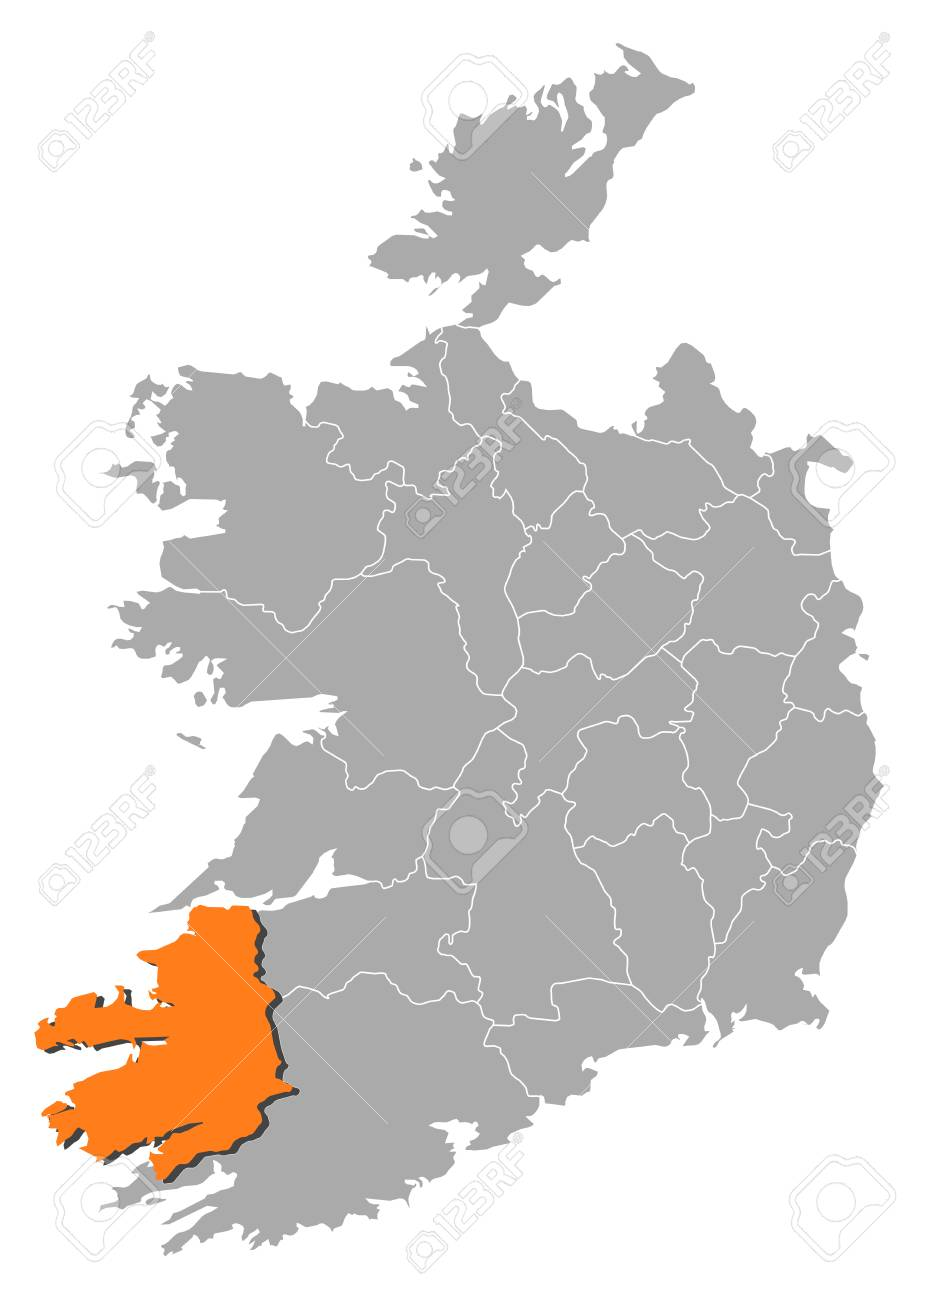 Map Of Ireland With The Provinces  Kerry Is Highlighted By Orange     Map of Ireland with the provinces  Kerry is highlighted by orange  Stock  Vector